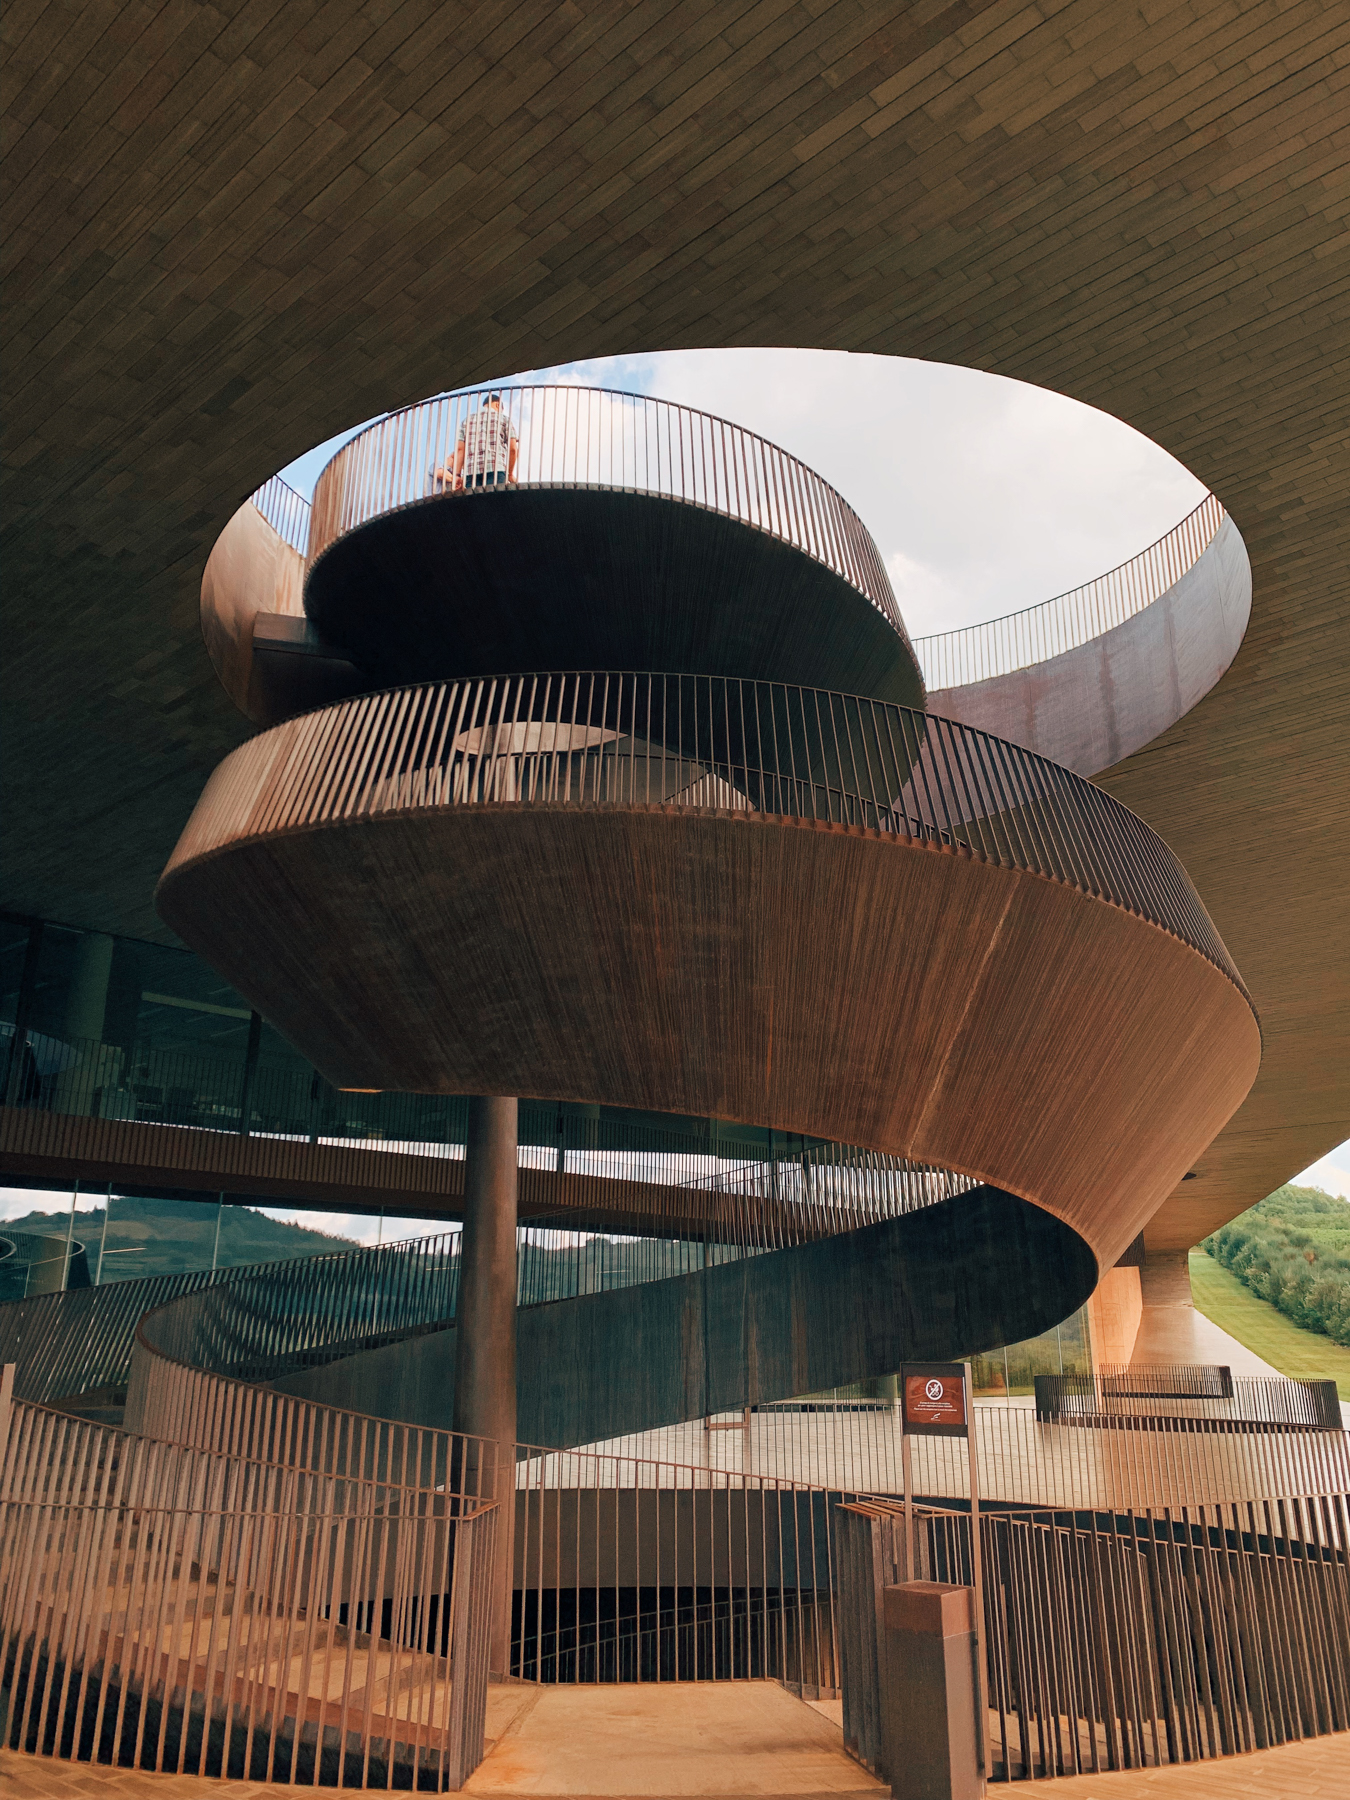 The architecture at Antinori was incredible.